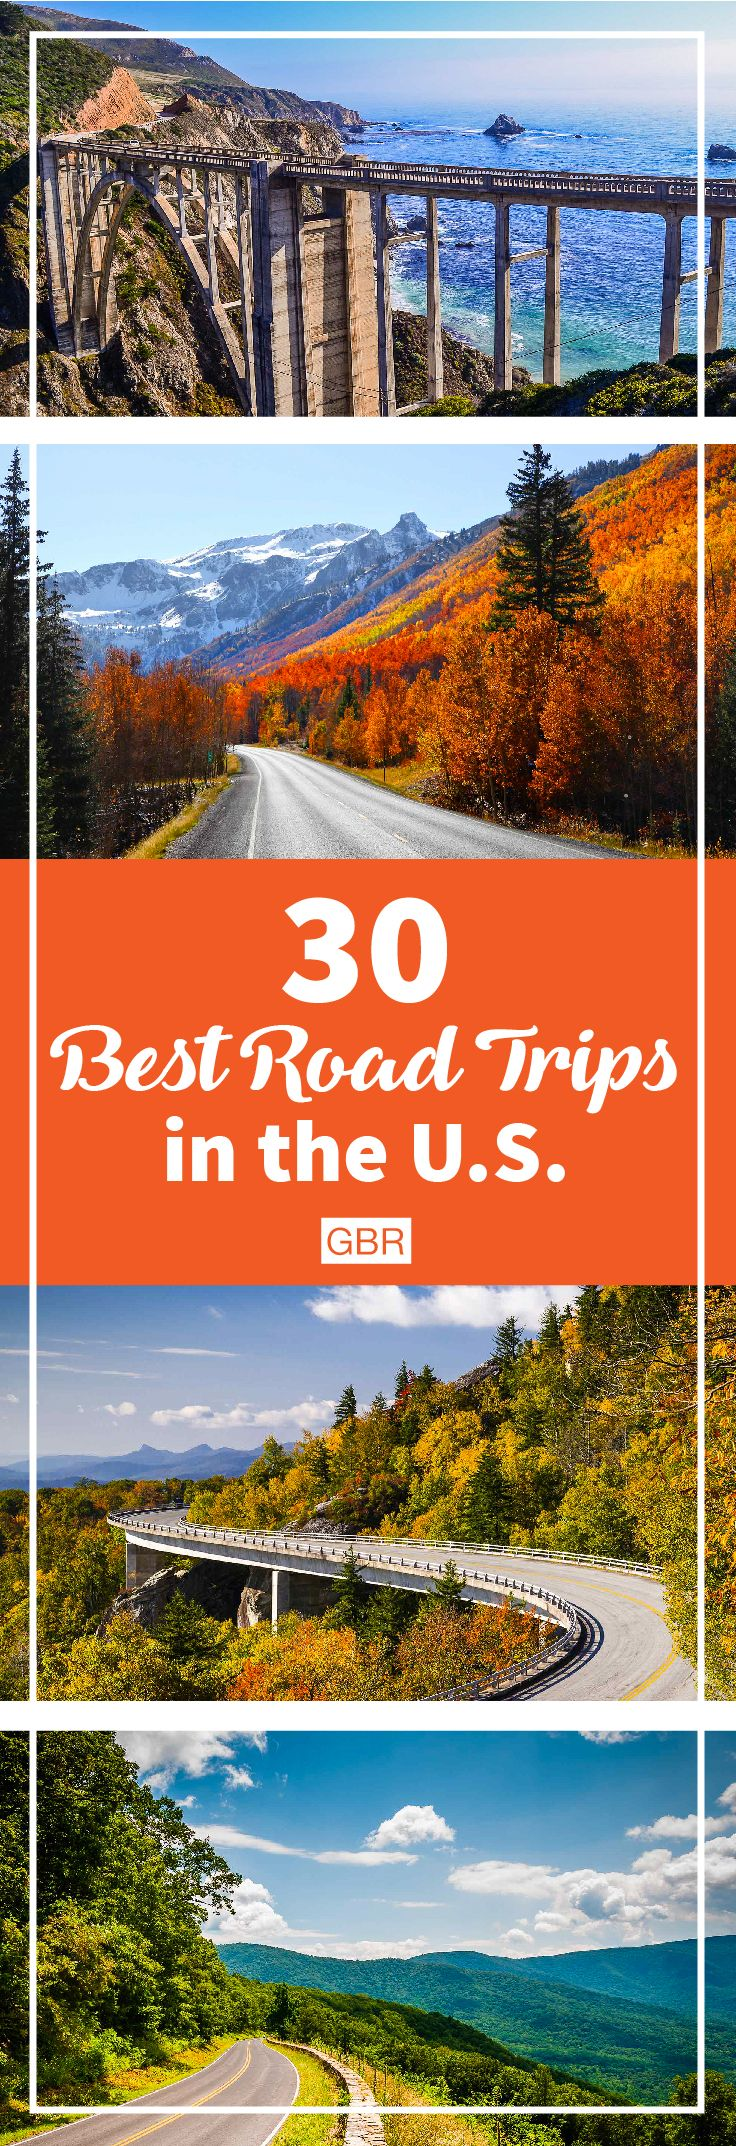 Consider making your next vacation one of these awesome road trips within the U.S.